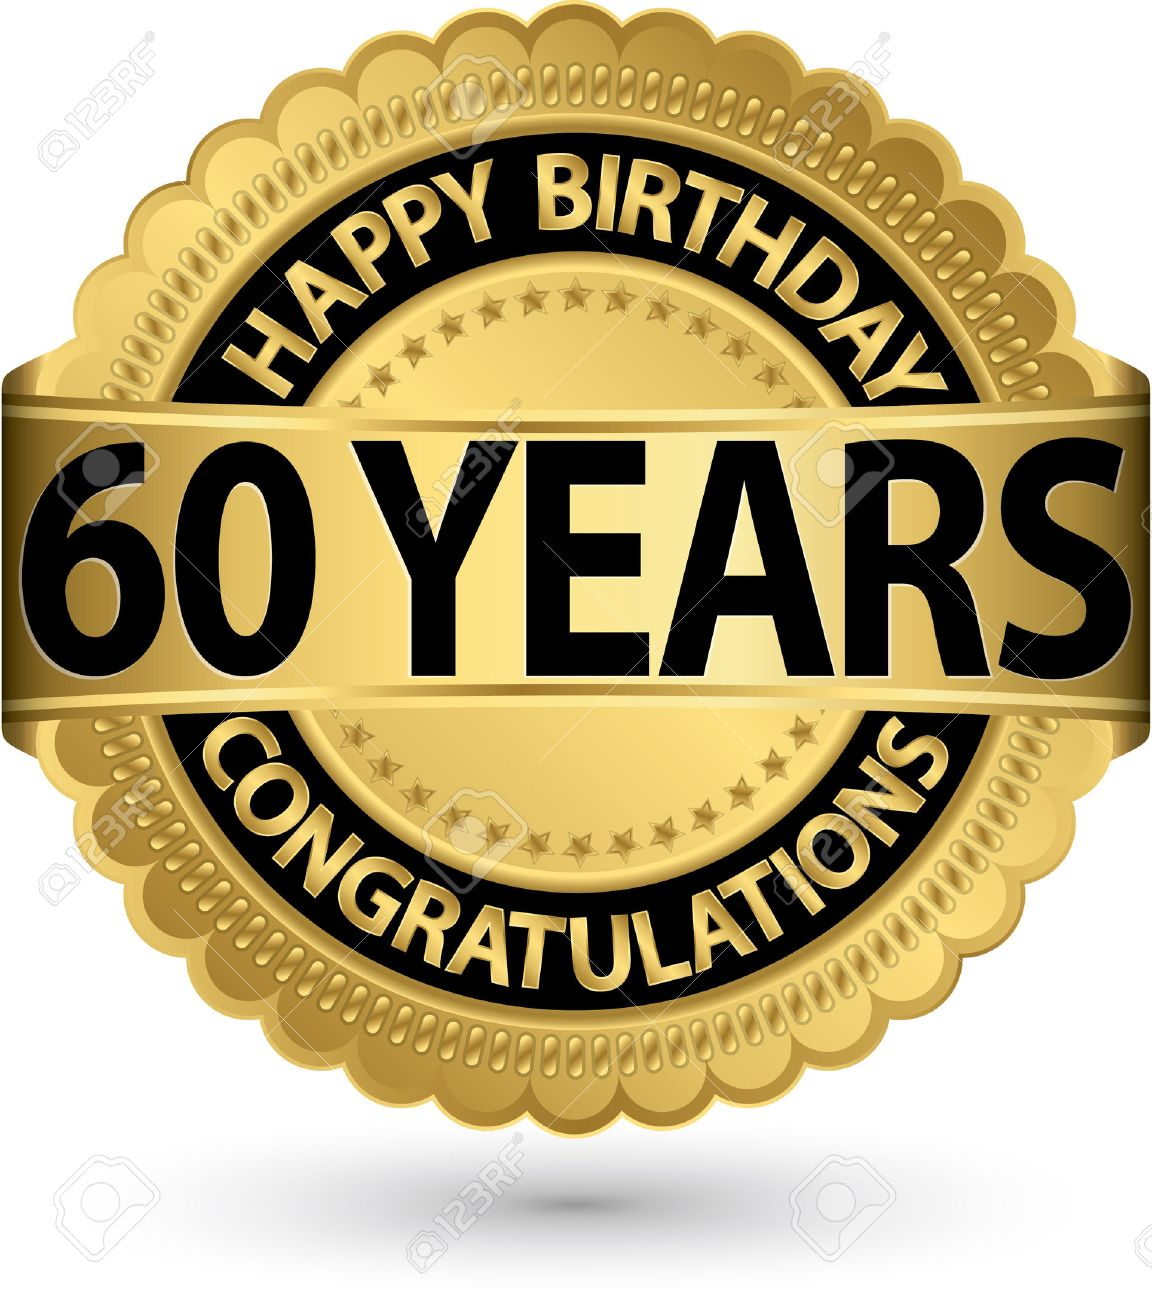 Happy Birthday 60 Years Gold Label Vector Illustration